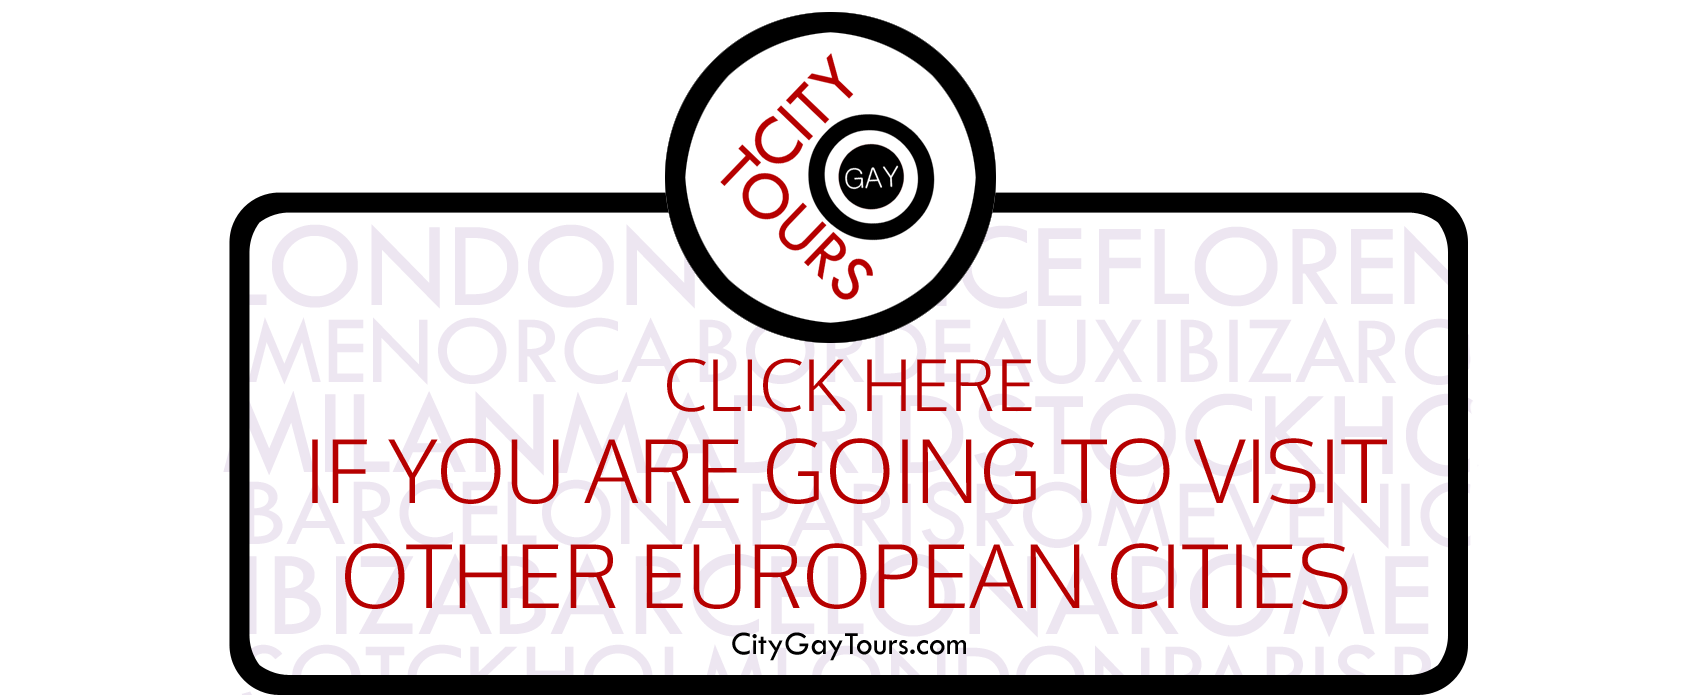 PROMO-CITY-GAY-TOURS-EN-LONDON-GAY-TOURS-3